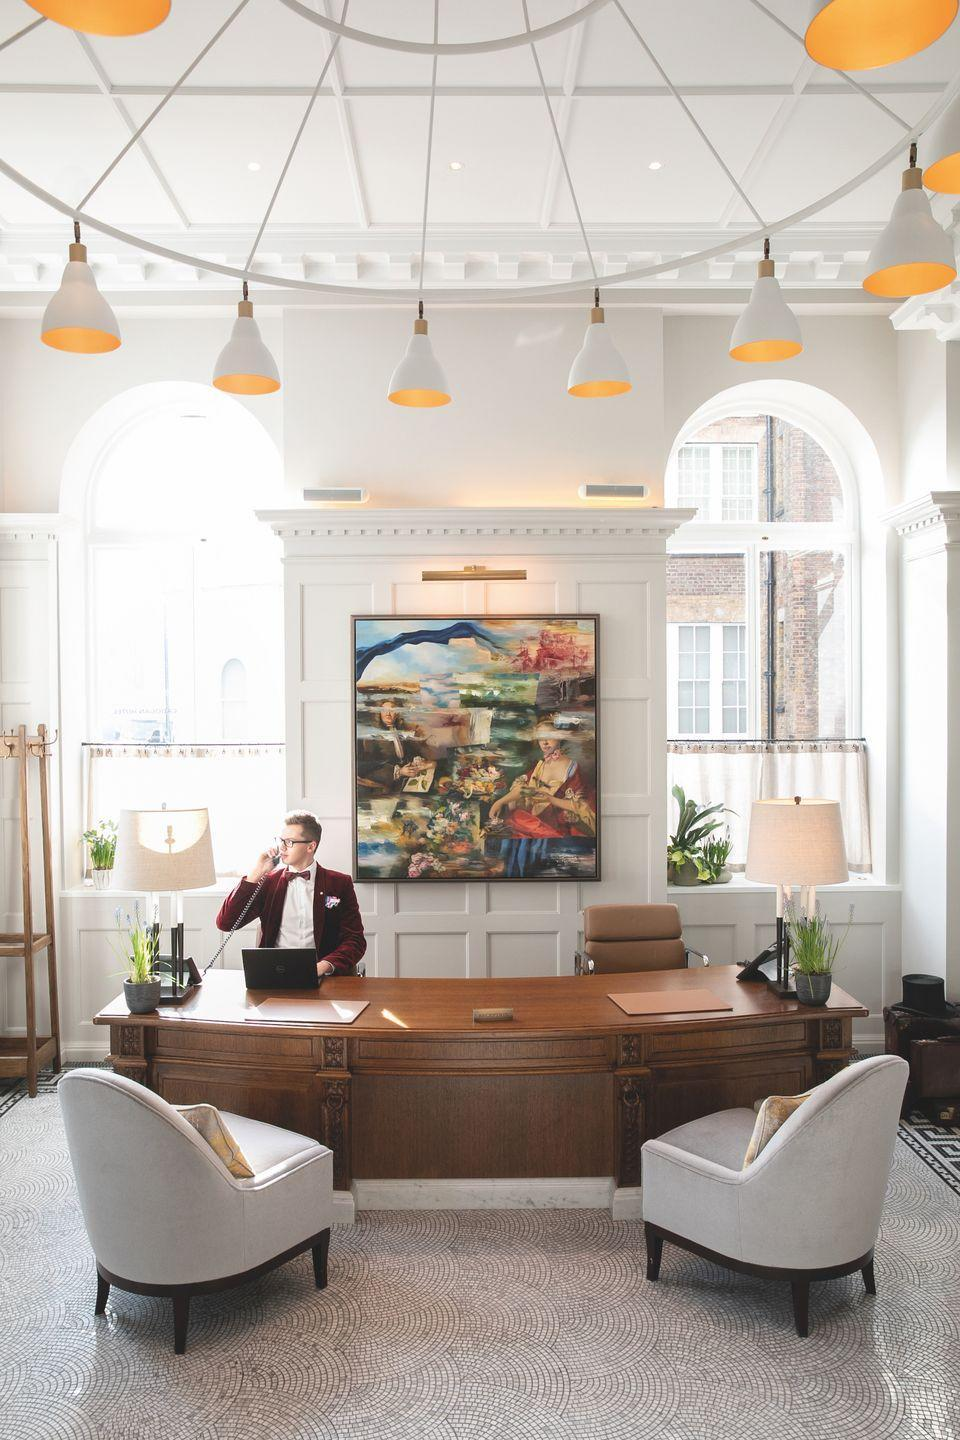 """<p><a href=""""https://www.belmond.com/hotels/europe/uk/london/belmond-cadogan-hotel/"""" rel=""""nofollow noopener"""" target=""""_blank"""" data-ylk=""""slk:Belmond's Cadogan Hotel"""" class=""""link rapid-noclick-resp"""">Belmond's Cadogan Hotel</a> property lies in London's idyllic Chelsea neighborhood and has enchanted world-famous creatives like Oscar Wilde and Lillie Langtry for nearly 150 years. Today, it houses 430 pieces of original artworks primarily from British artists that guests from around the world flock to admire. </p><p>The hotel recently revealed a new collaboration with British-American artist <a href=""""https://www.nancycadogan.com/"""" rel=""""nofollow noopener"""" target=""""_blank"""" data-ylk=""""slk:Nancy Cadogan"""" class=""""link rapid-noclick-resp"""">Nancy Cadogan</a> to feature an installation of five pieces from her collection through the end of 2020. She is also working on additional pieces that will be exclusively added to the hotel's exhibit.</p><p> Once you've feasted your eyes upon all the gorgeous artwork, you can enjoy exclusive access to Cadogan Place Gardens, the hotel's fine dining options, some of London's best shopping right outside your door, and exclusive access to the city's most prominent galleries and museums.</p><p><a class=""""link rapid-noclick-resp"""" href=""""https://www.belmond.com/hotels/europe/uk/london/belmond-cadogan-hotel/"""" rel=""""nofollow noopener"""" target=""""_blank"""" data-ylk=""""slk:Book Now"""">Book Now</a></p>"""